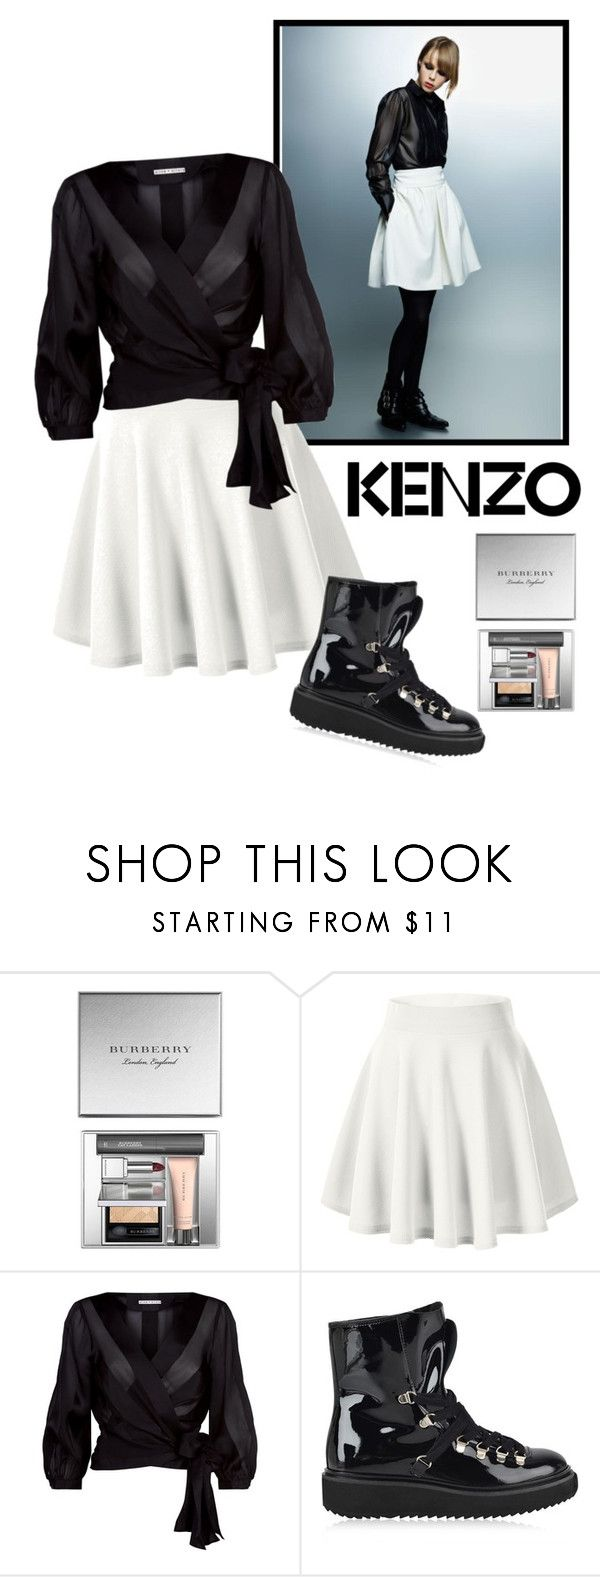 """""""Winter Update B/W & High Boots"""" by julejoon ❤ liked on Polyvore featuring Karl Lagerfeld, Kenzo, Burberry, cutekawaii and Alice + Olivia"""